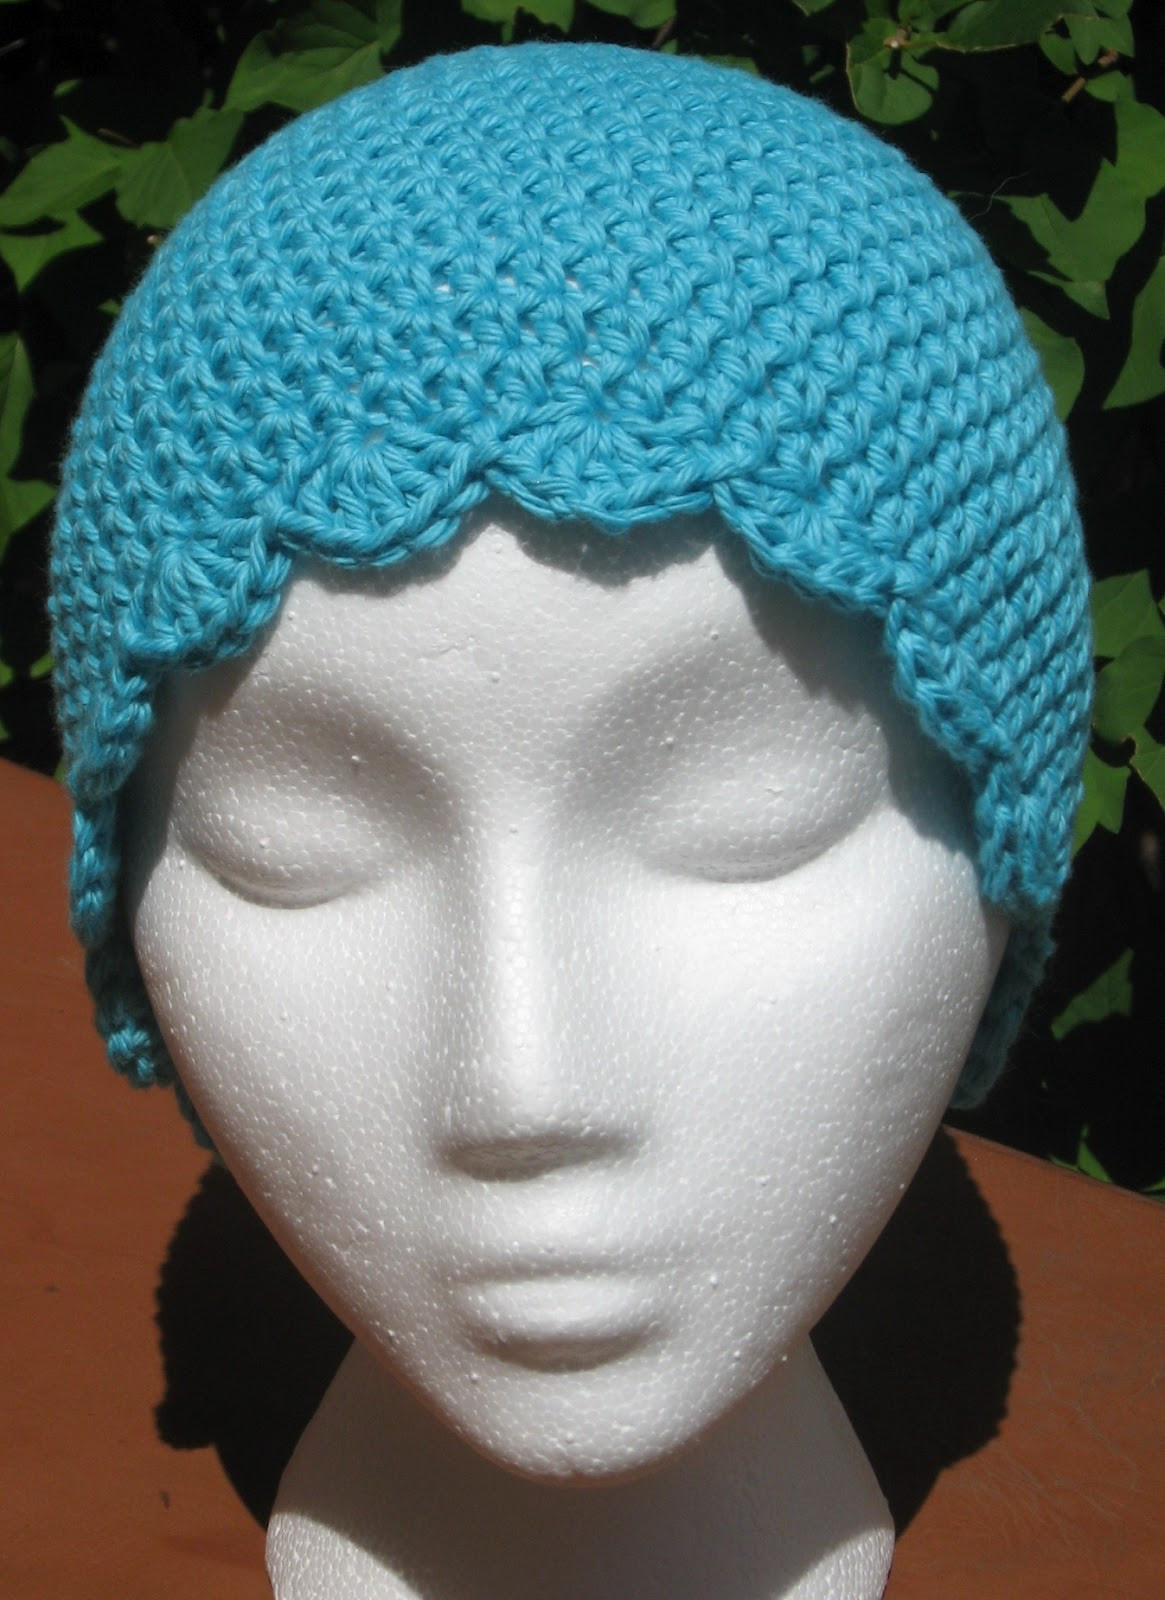 Chemo Cap Crochet Pattern Fresh Crochet Projects Crochet Chemo Sleep Cap Of Brilliant 48 Pictures Chemo Cap Crochet Pattern